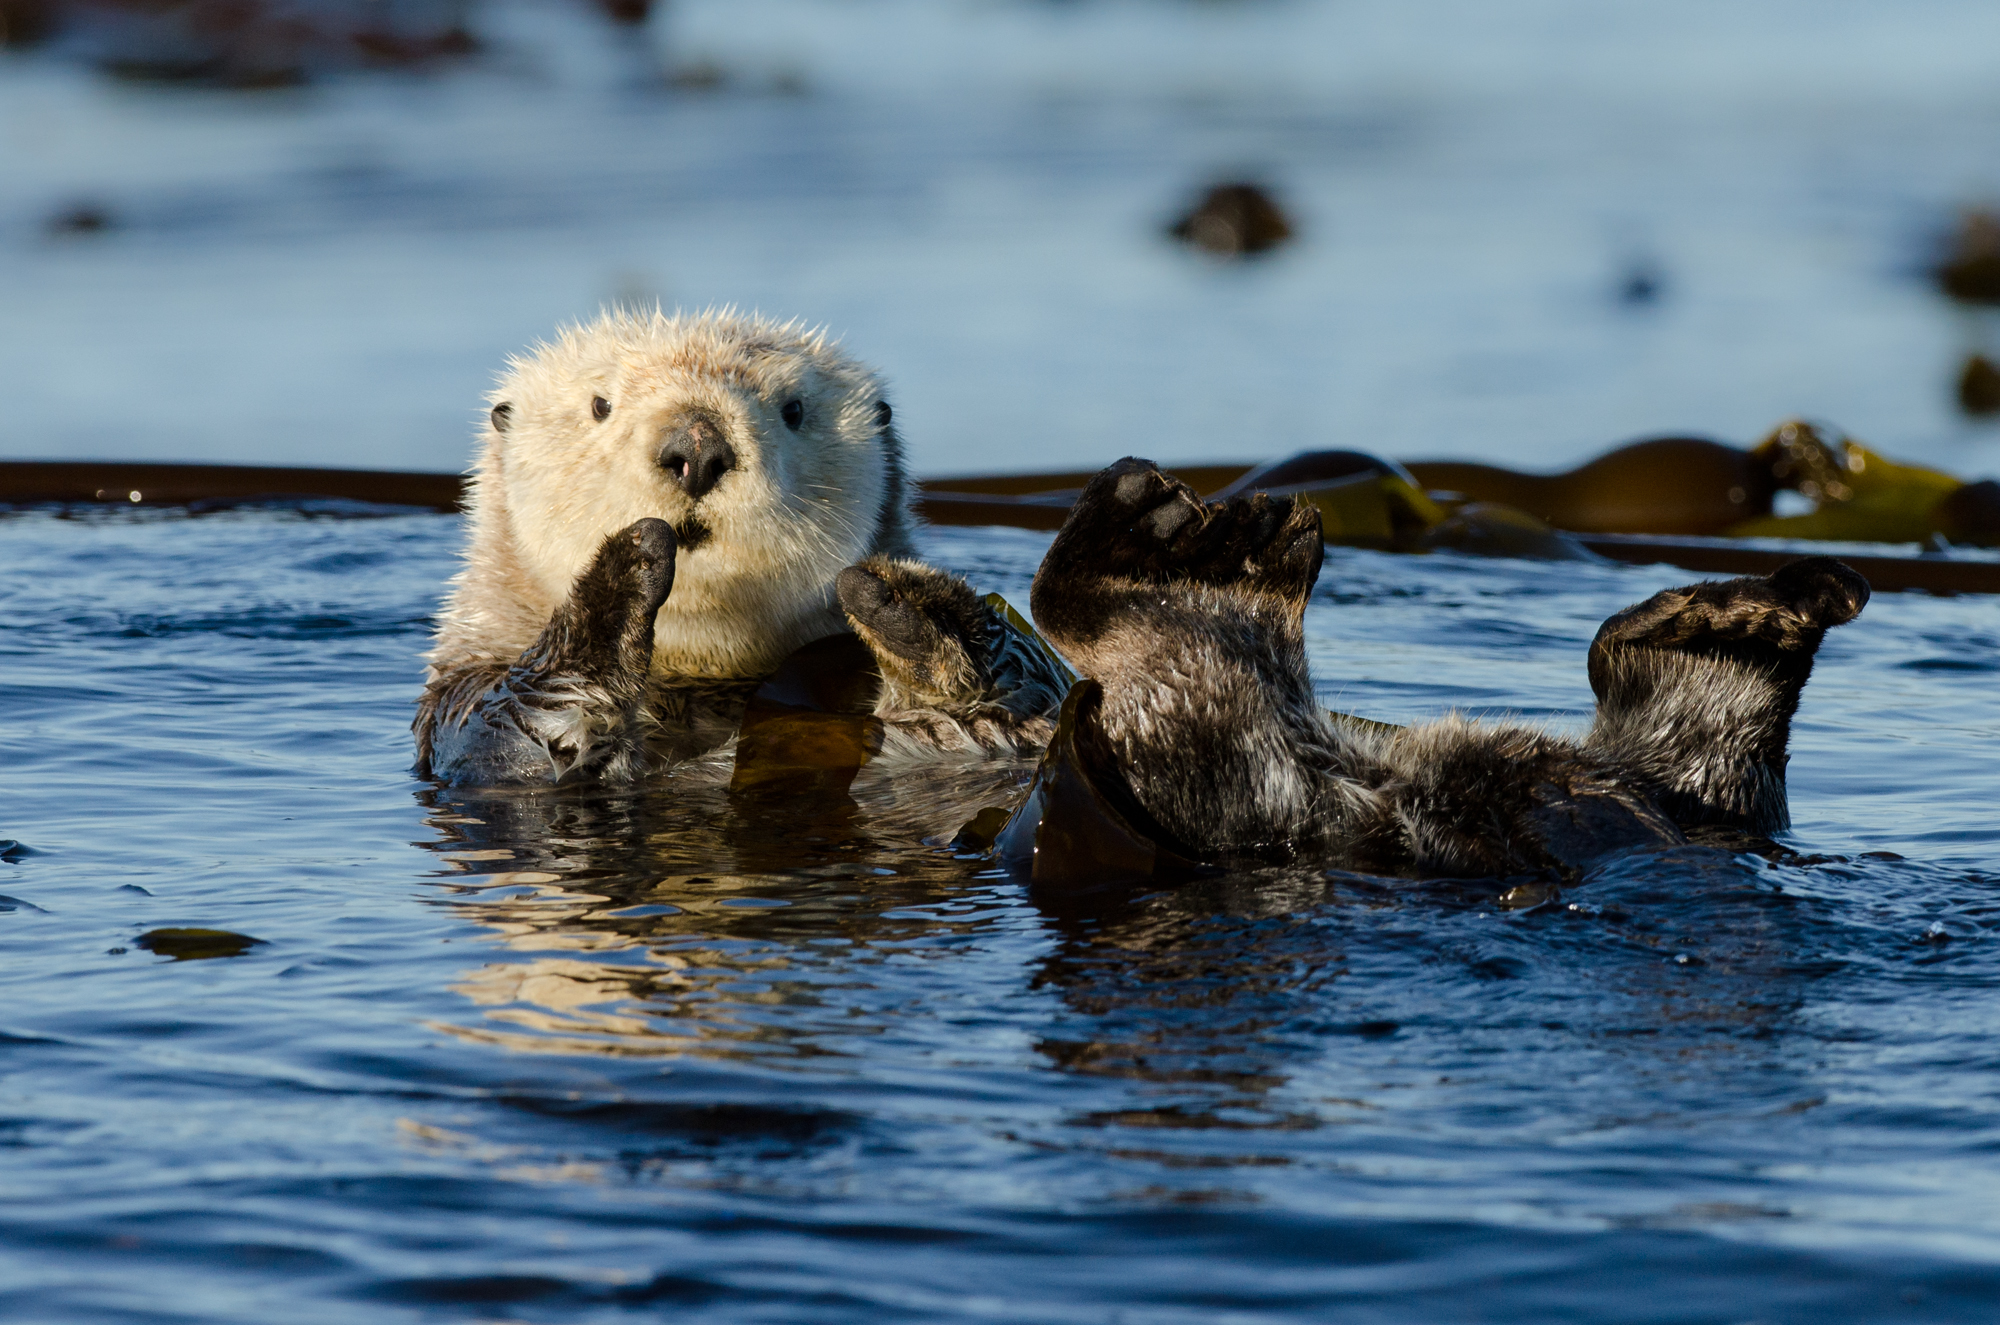 A sea otter wound up in kelp to prevent it drifting away as it sleeps.